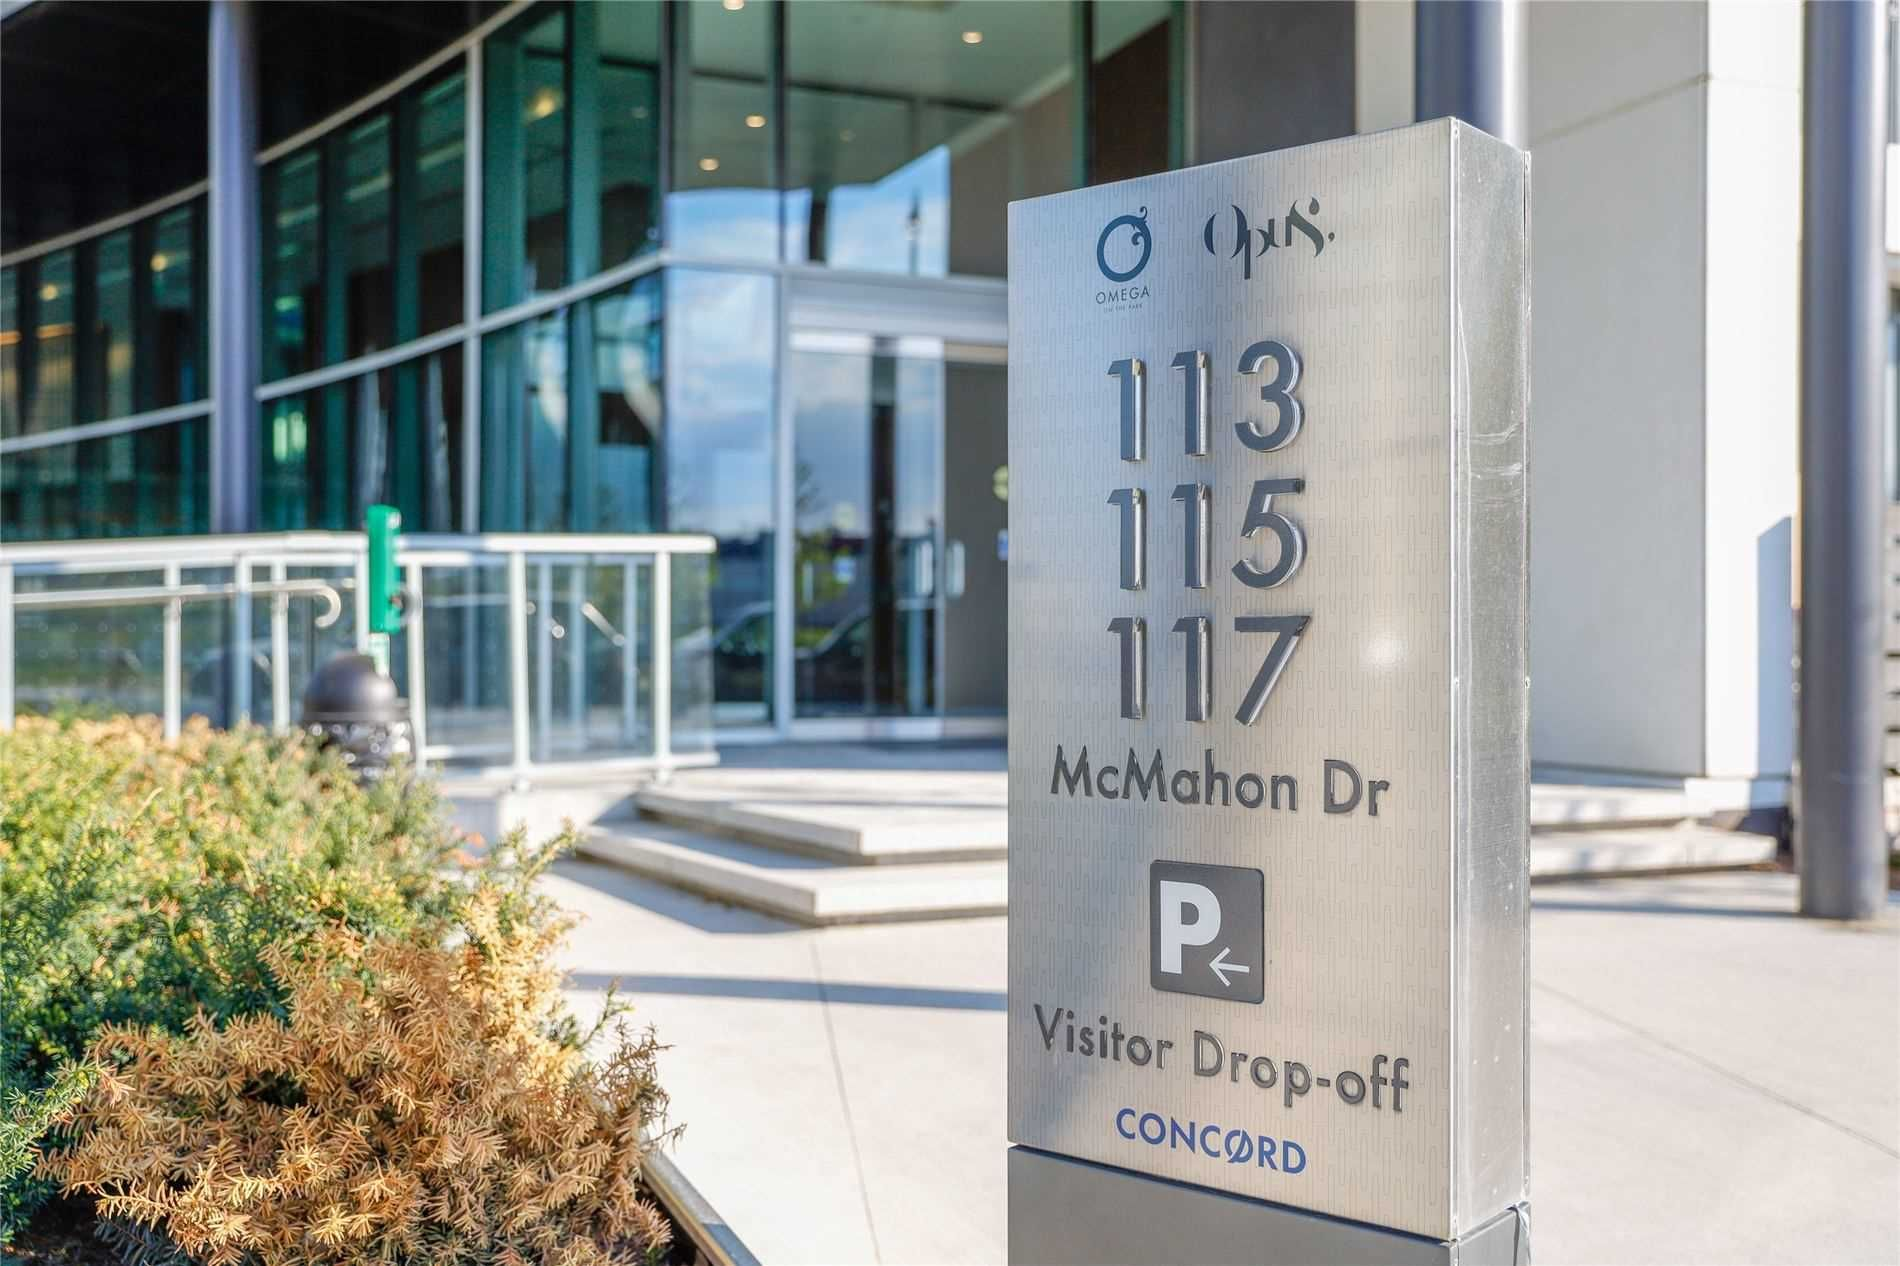 117 Mcmahon Dr, unit 207 for sale in Bayview Village - image #2